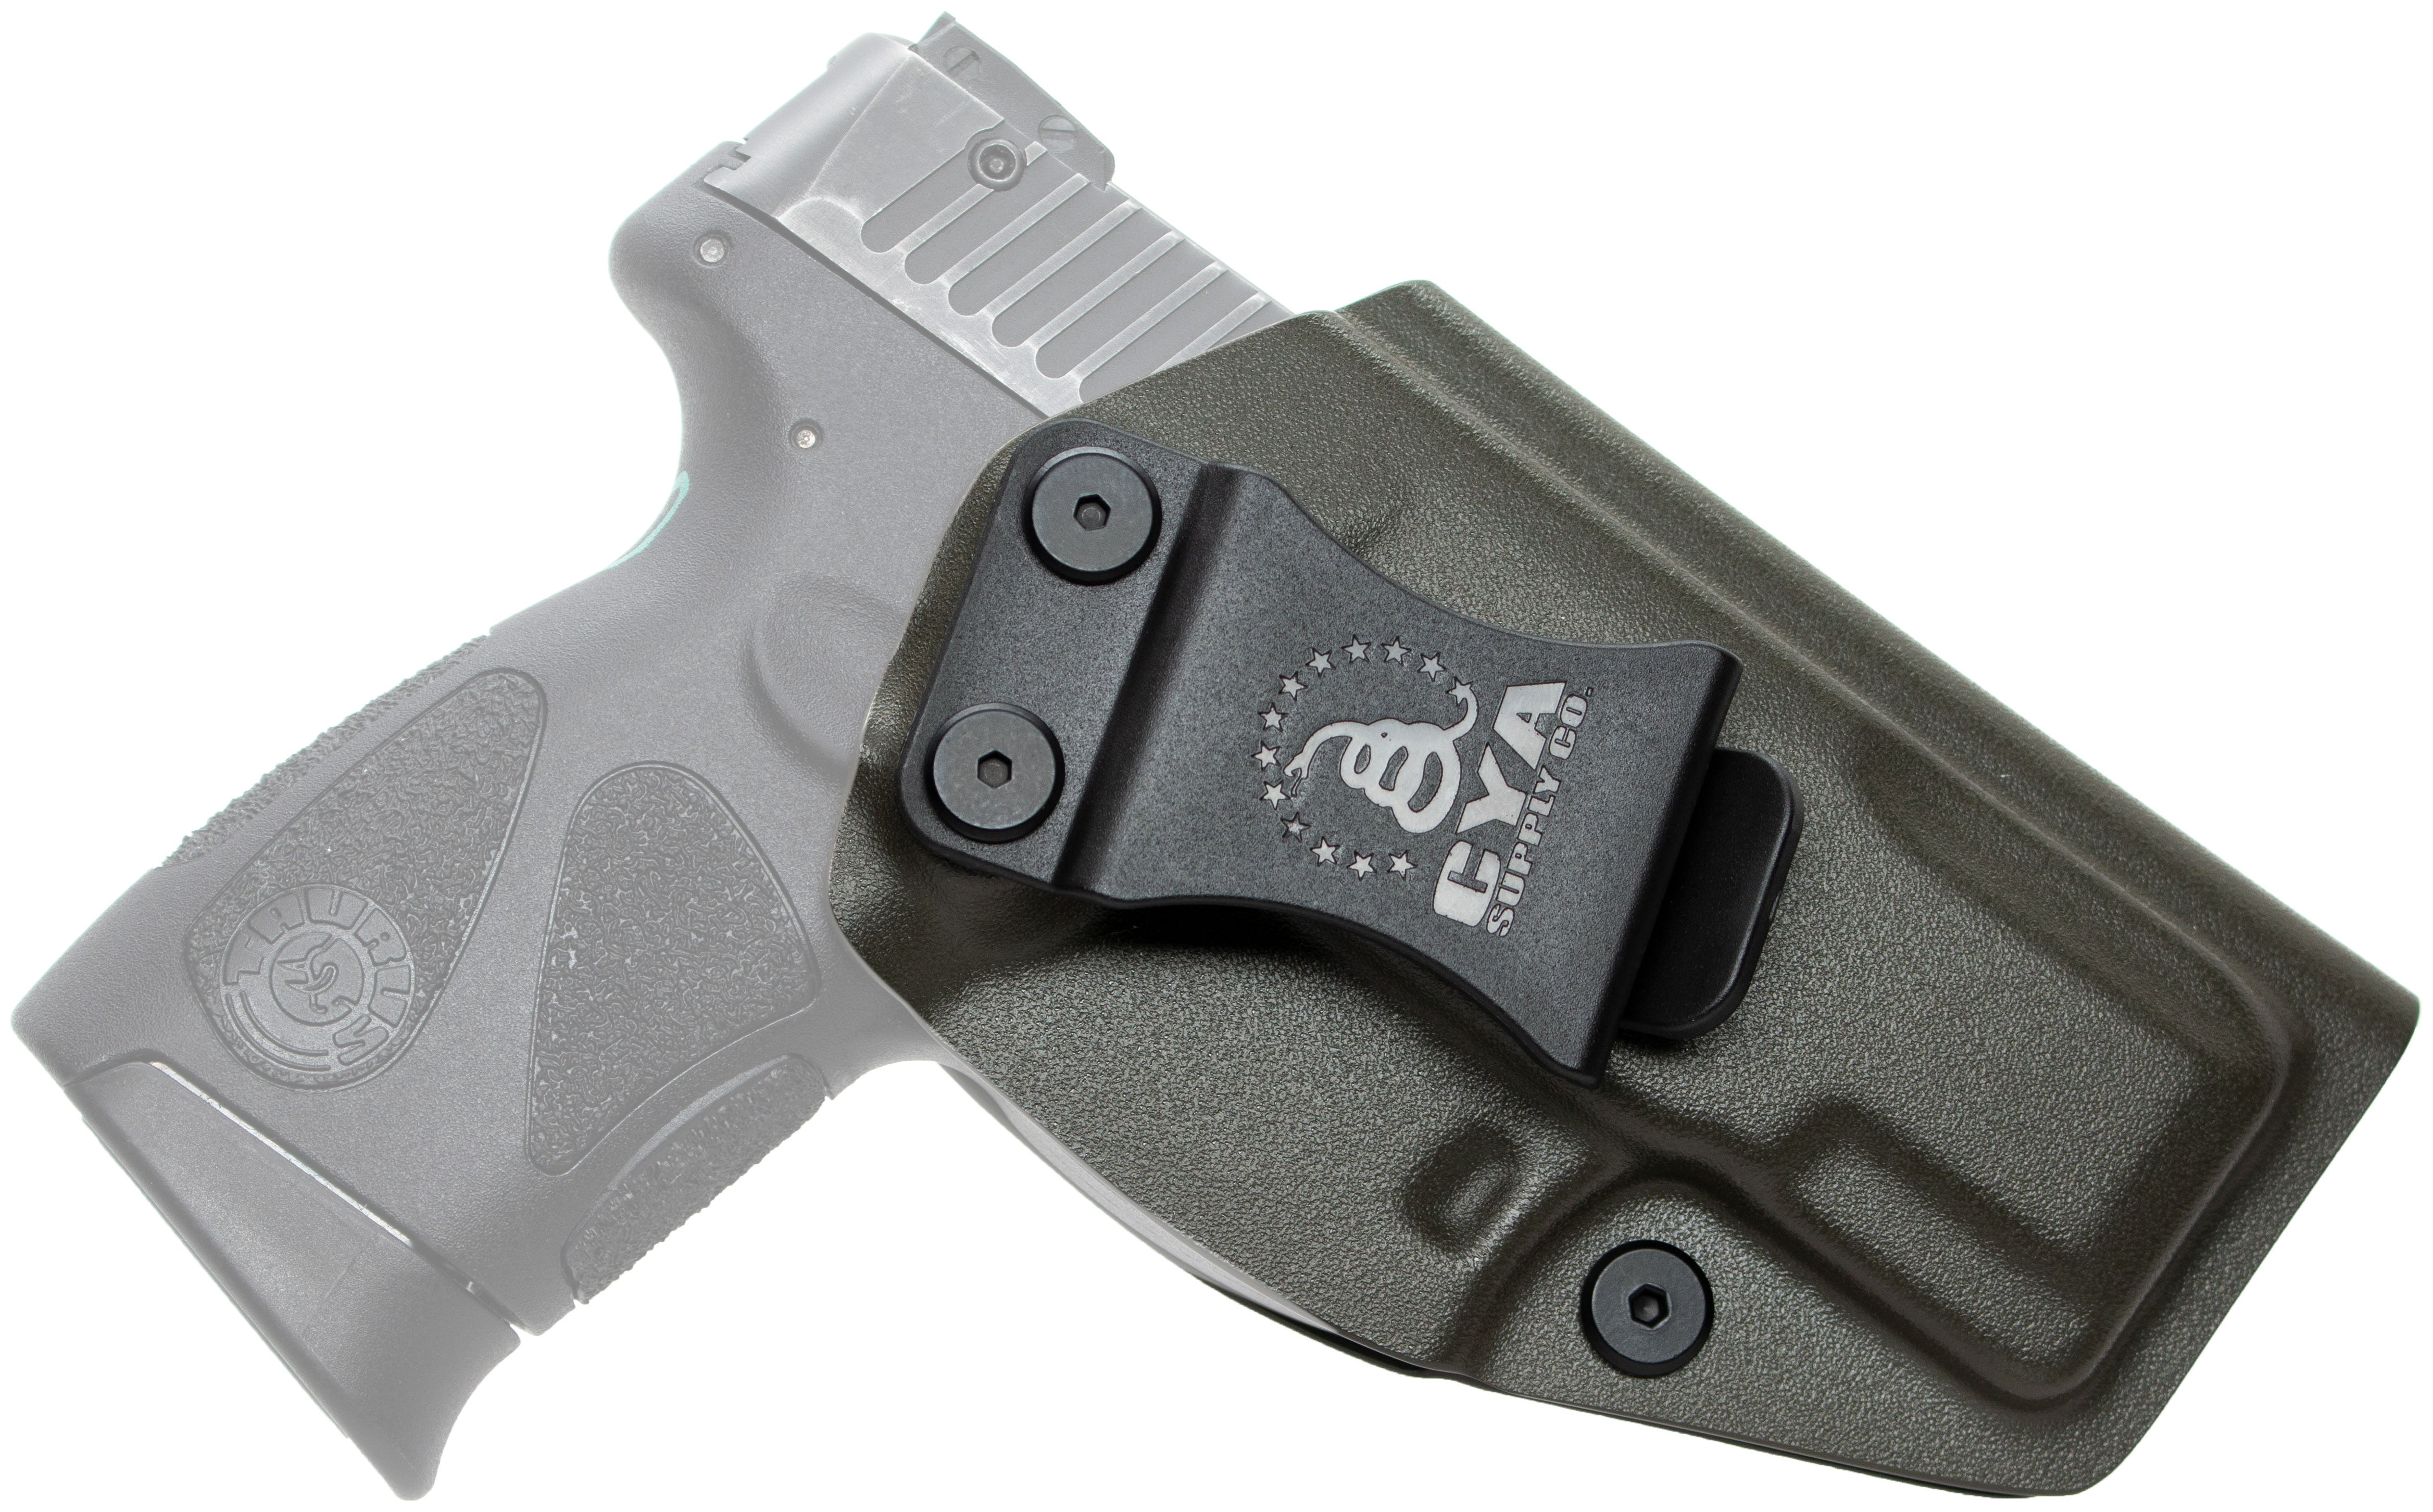 Taurus PT111 Millenium G2 / G2C IWB Holster for Concealed Carry